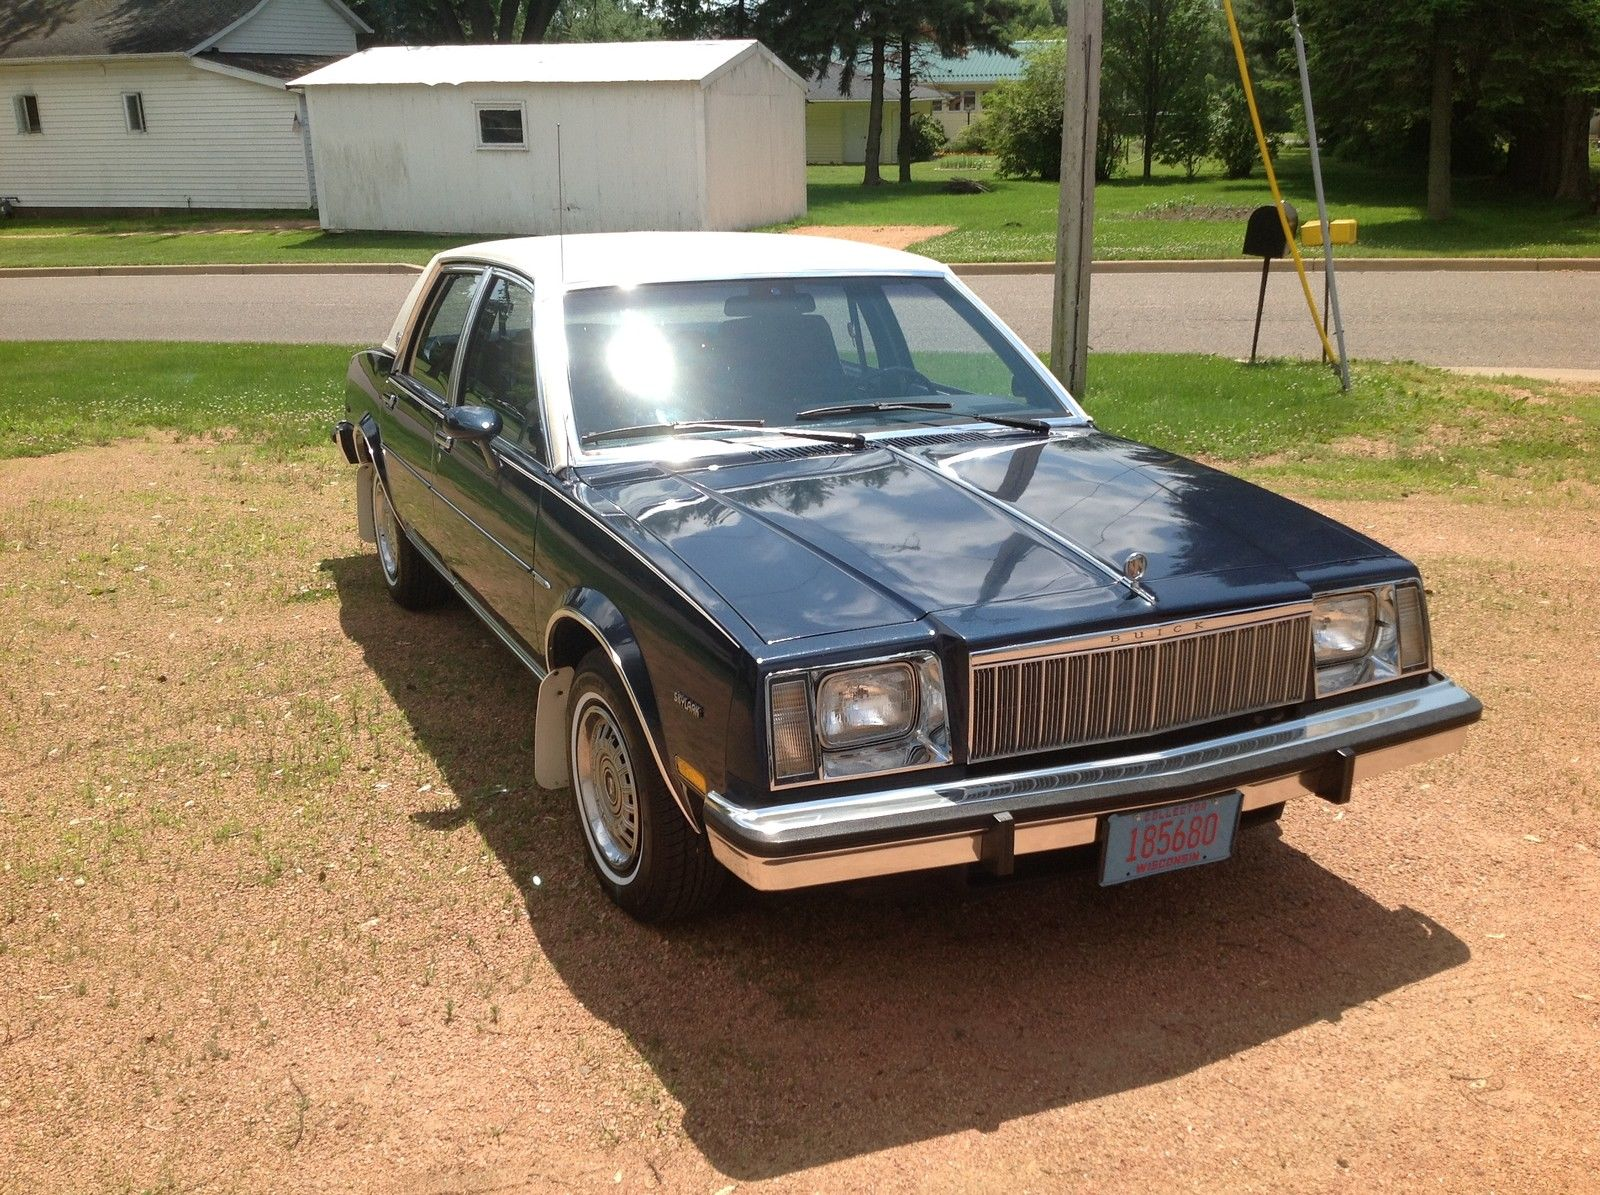 Buick Skylark Limited Sedan For Sale on 1986 Buick Lesabre T Type